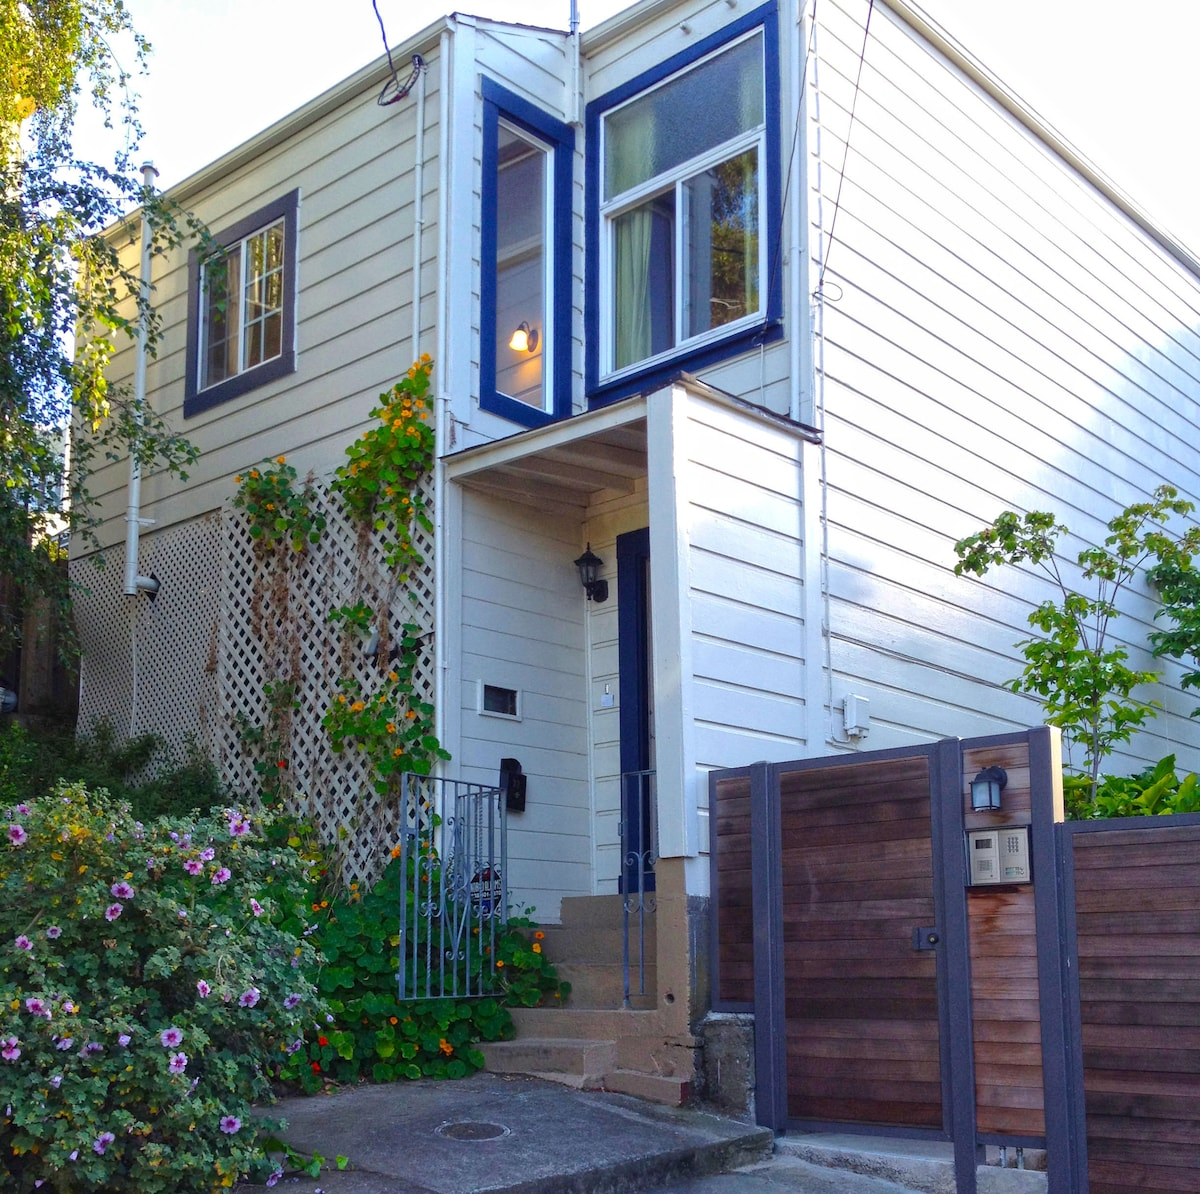 2BR, fully furnished north Bernal Heights house, at the end of a quiet cul-de-sac; just 1 block from Precita Park